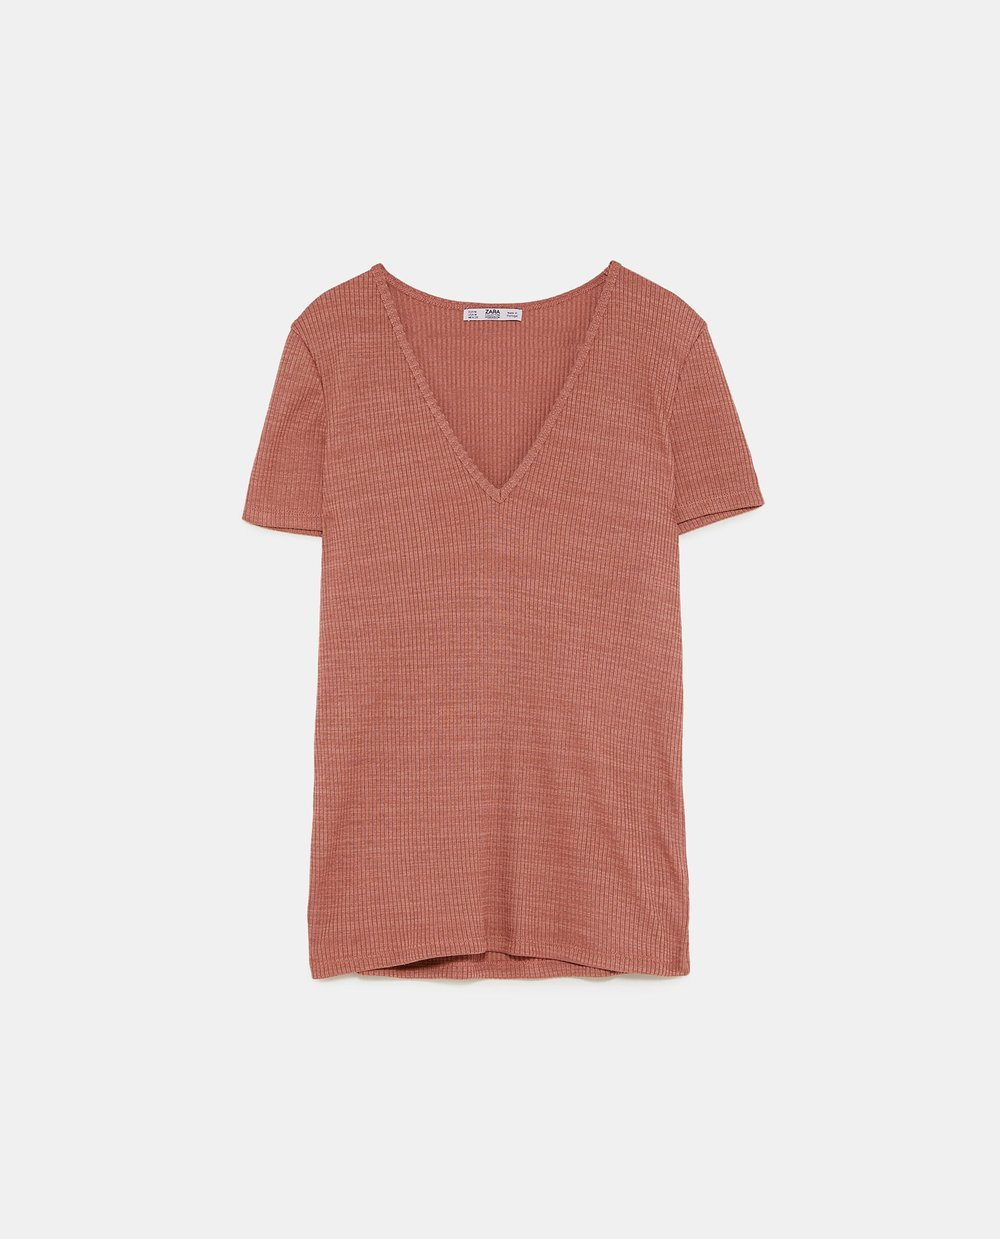 Zara ribbed top, brick, £12.99